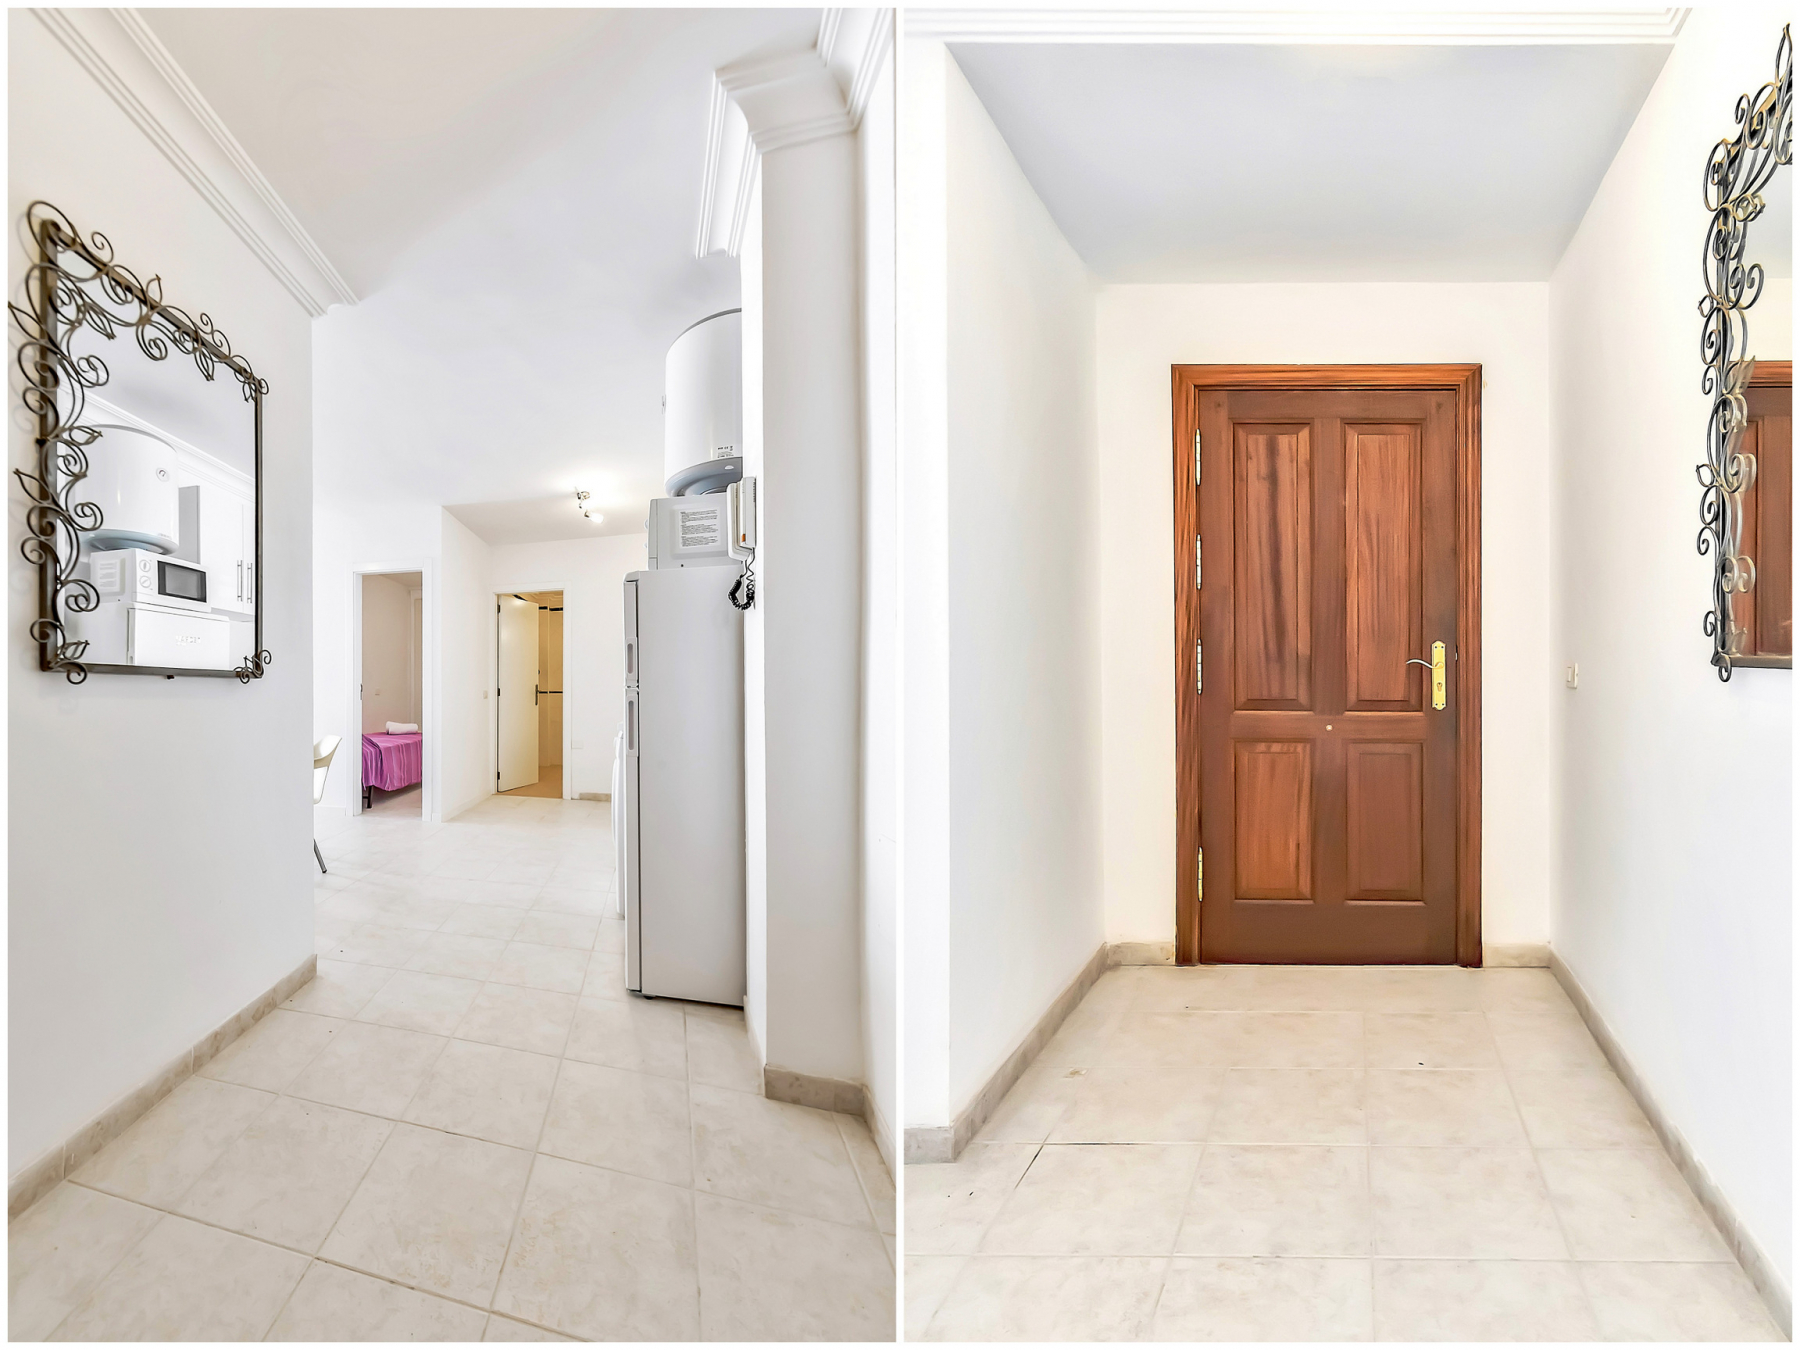 Properties for Sale in Tenerife, Canary Islands, Spain | SylkWayStar Real Estate. EXCLUSIVE OFFER. Image-26344